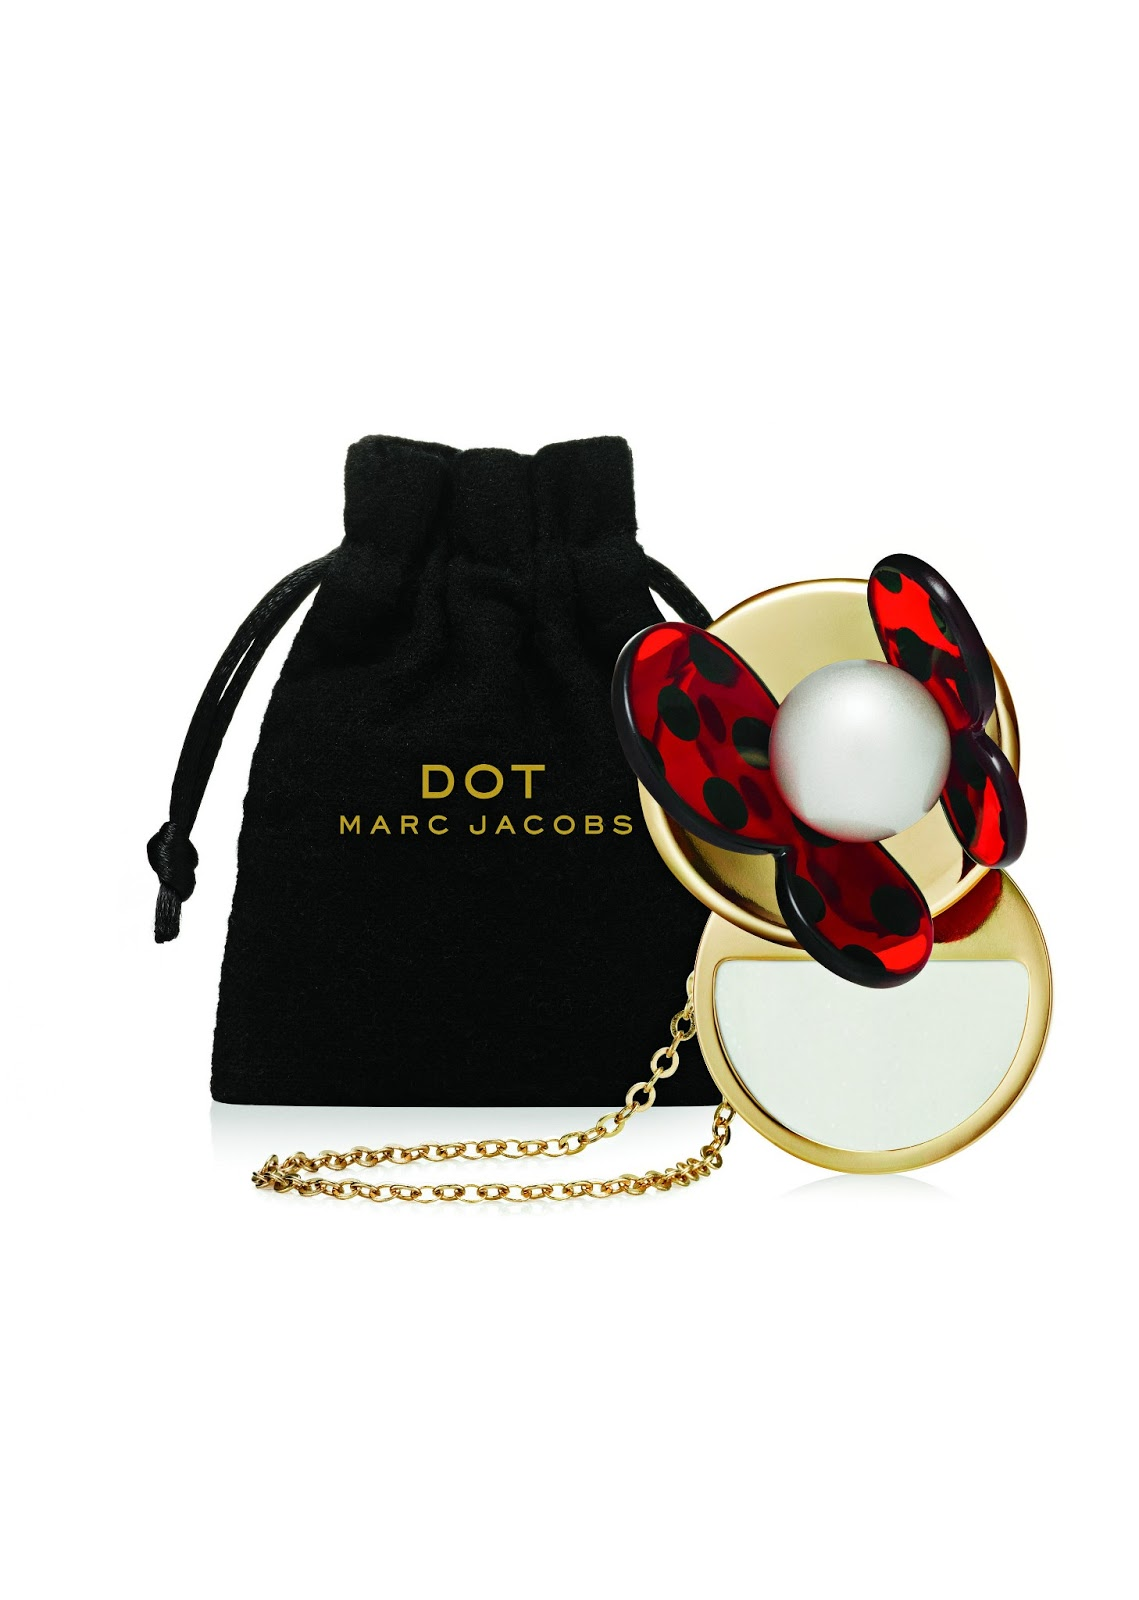 Wear Marc Jacobs Dot around your neck